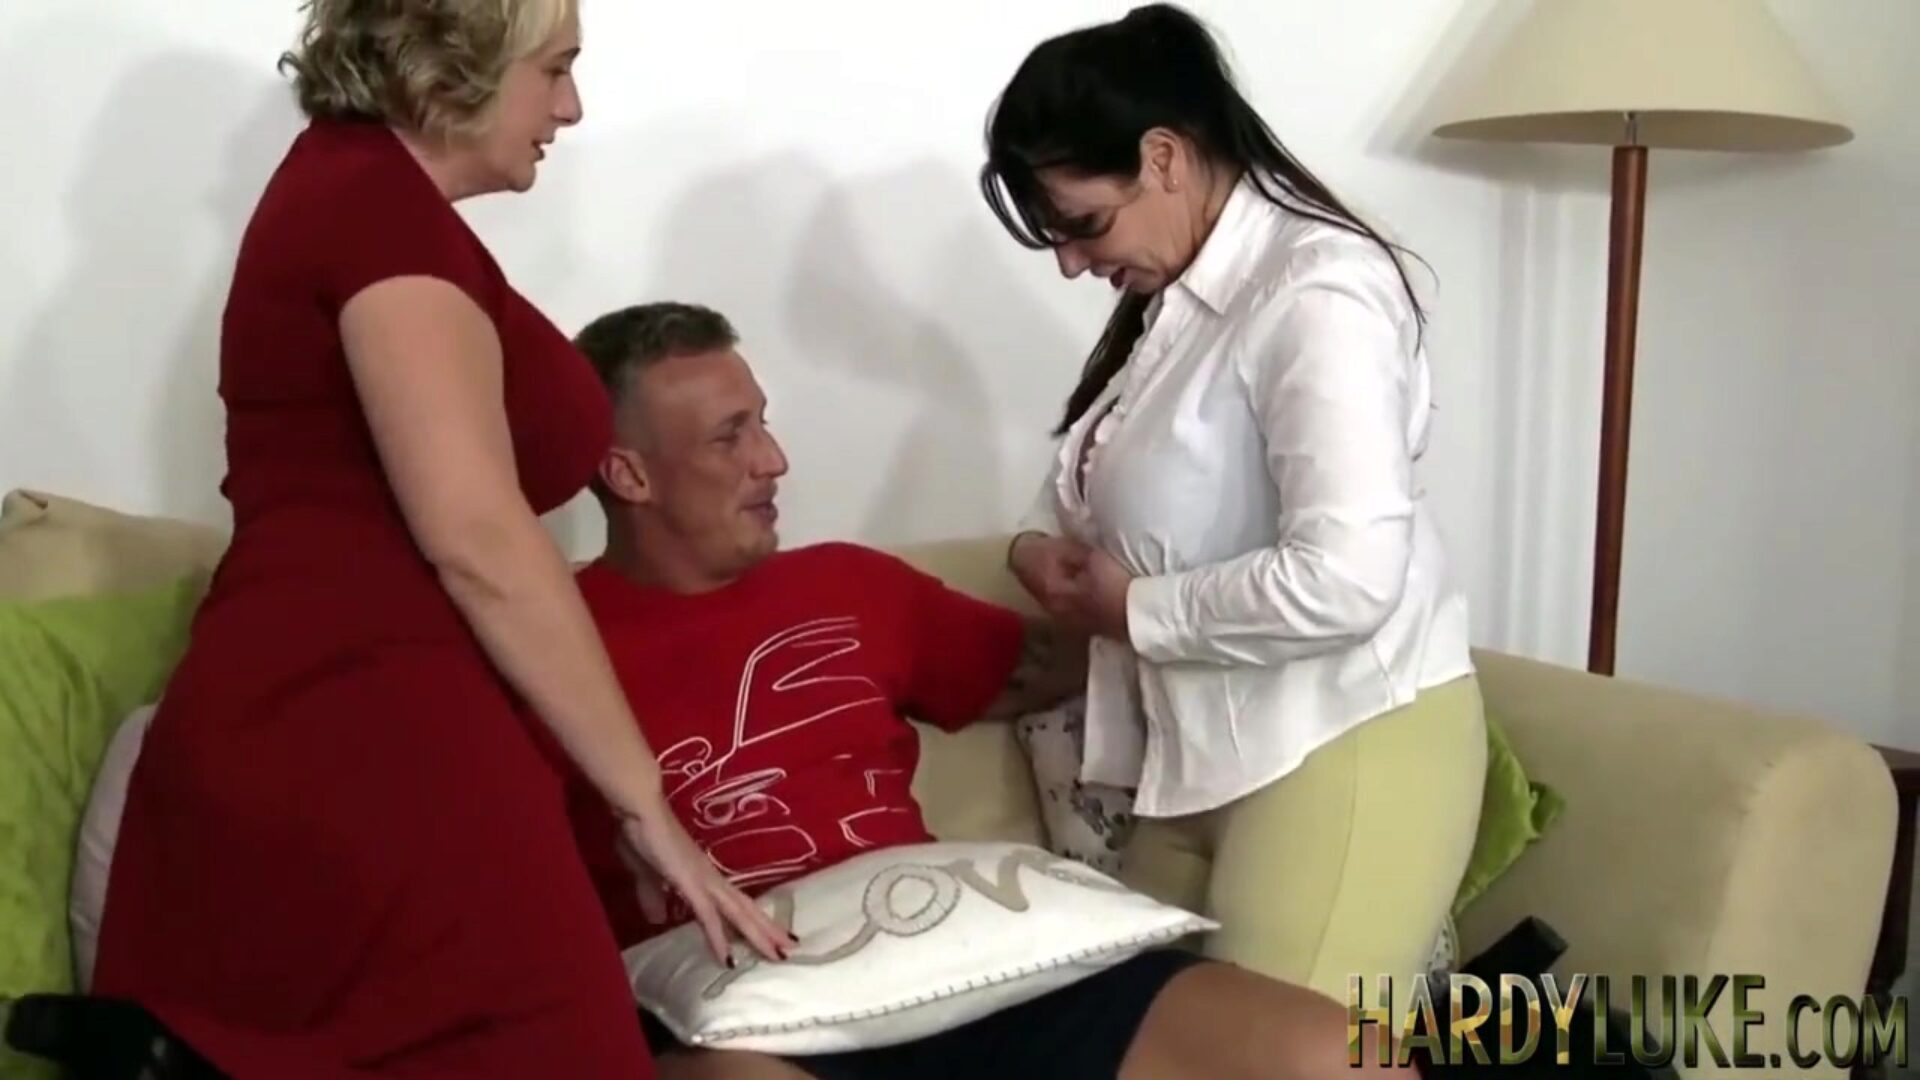 Camilla Creampie and Josephine take turns on junior 10-Pounder Mature British chicks with immense kinks give double blowjob and dump after being pummeled rock hard